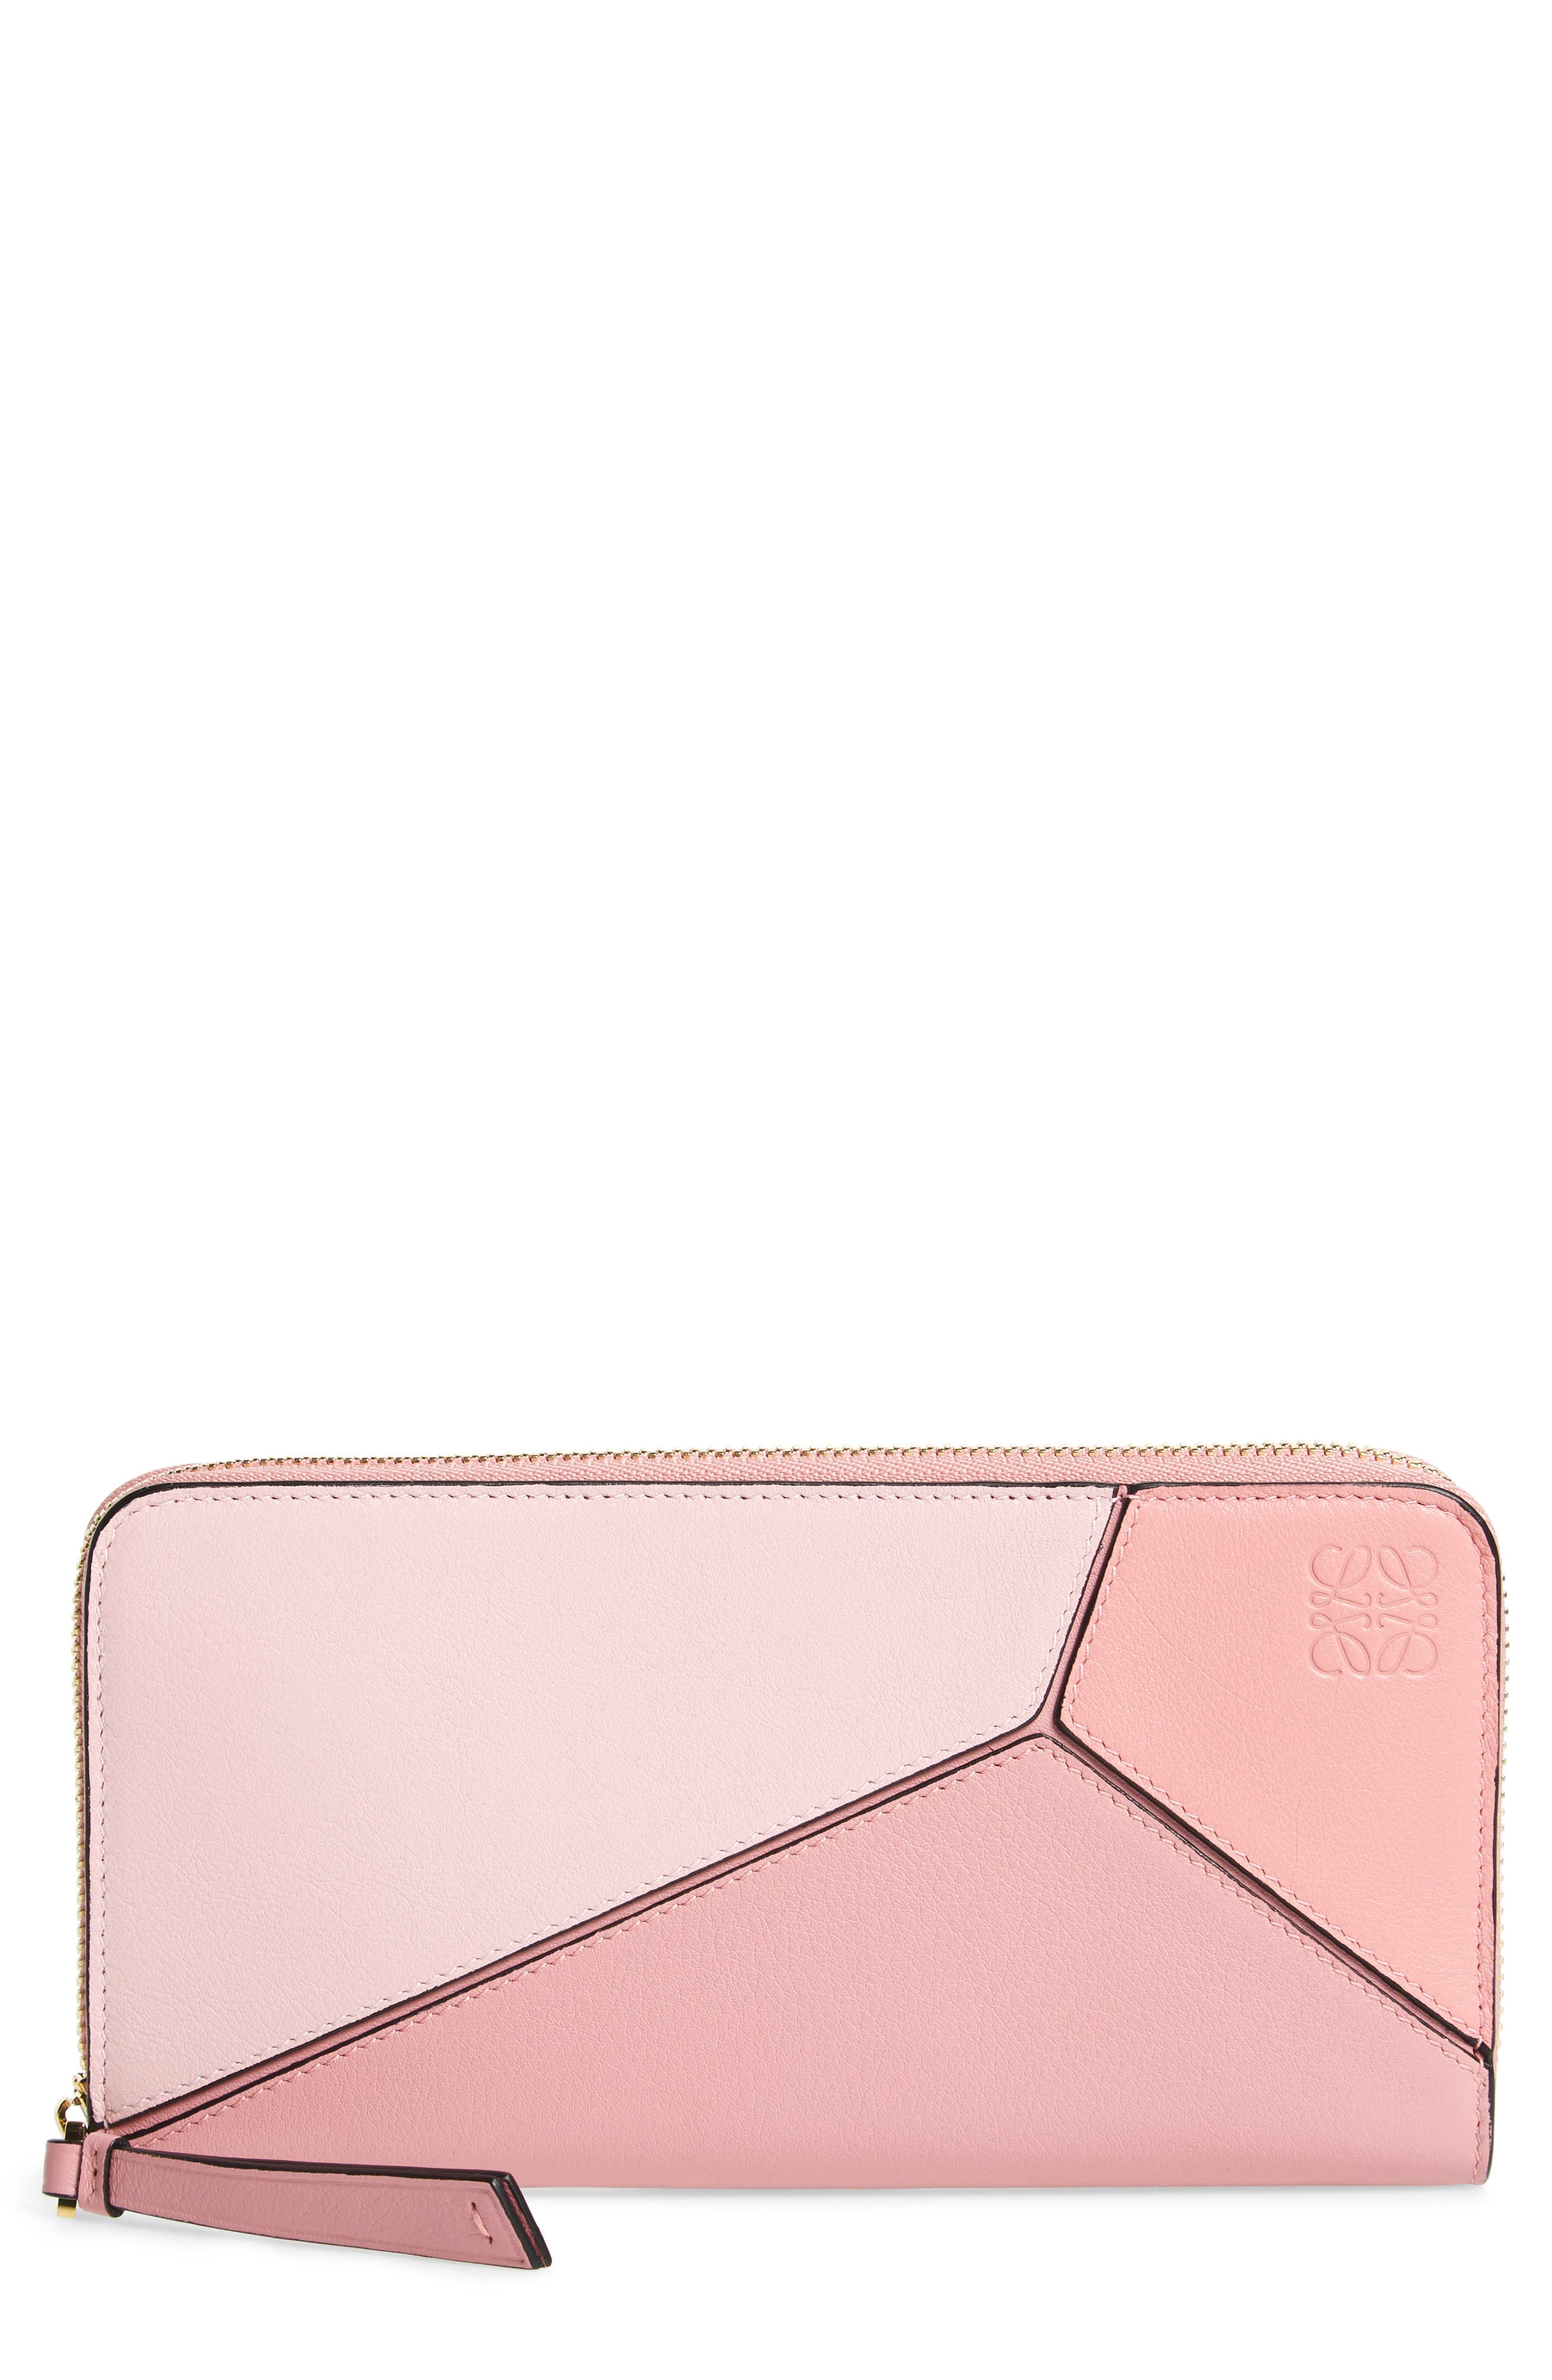 Puzzle Leather Zip Around Wallet,                             Main thumbnail 1, color,                             SOFT PINK/ CANDY/ DARK PINK